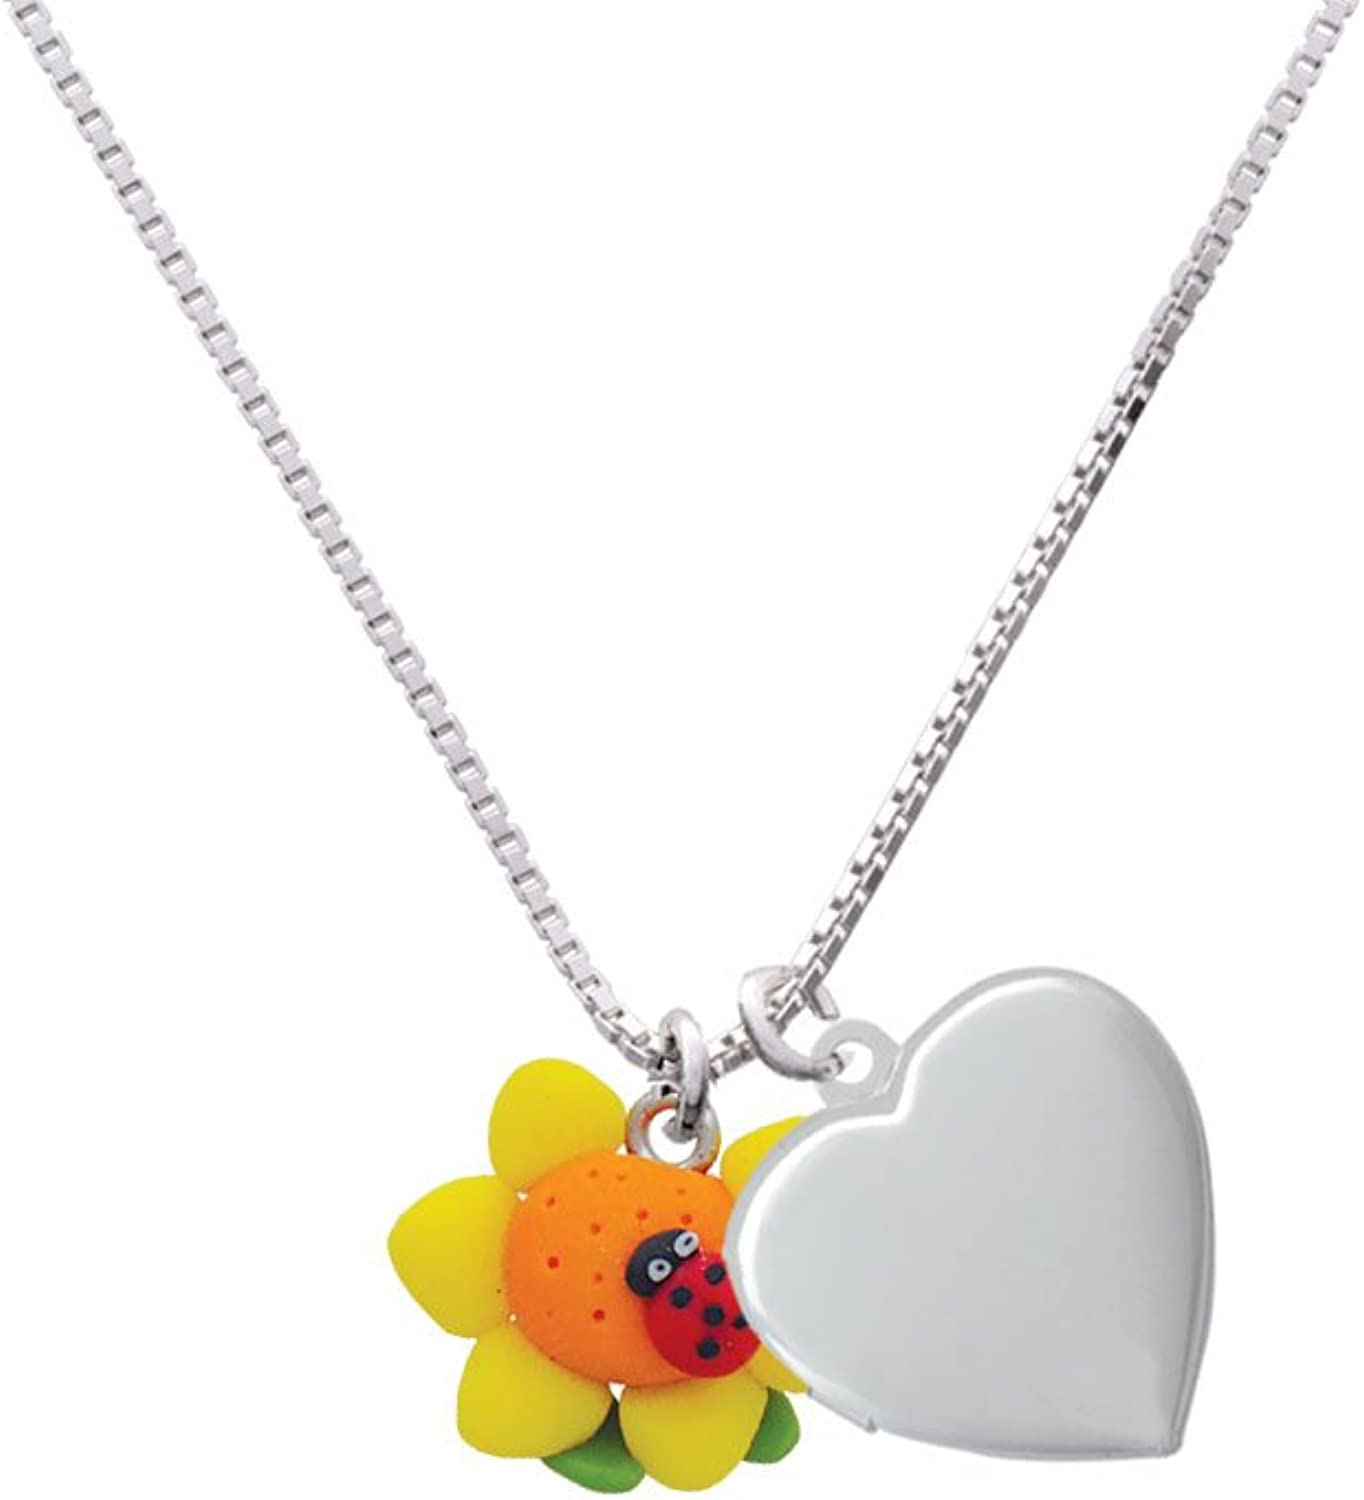 Delight Jewelry Fimo Clay Sunflower with Ladybug Heart Locket Necklace 18+2